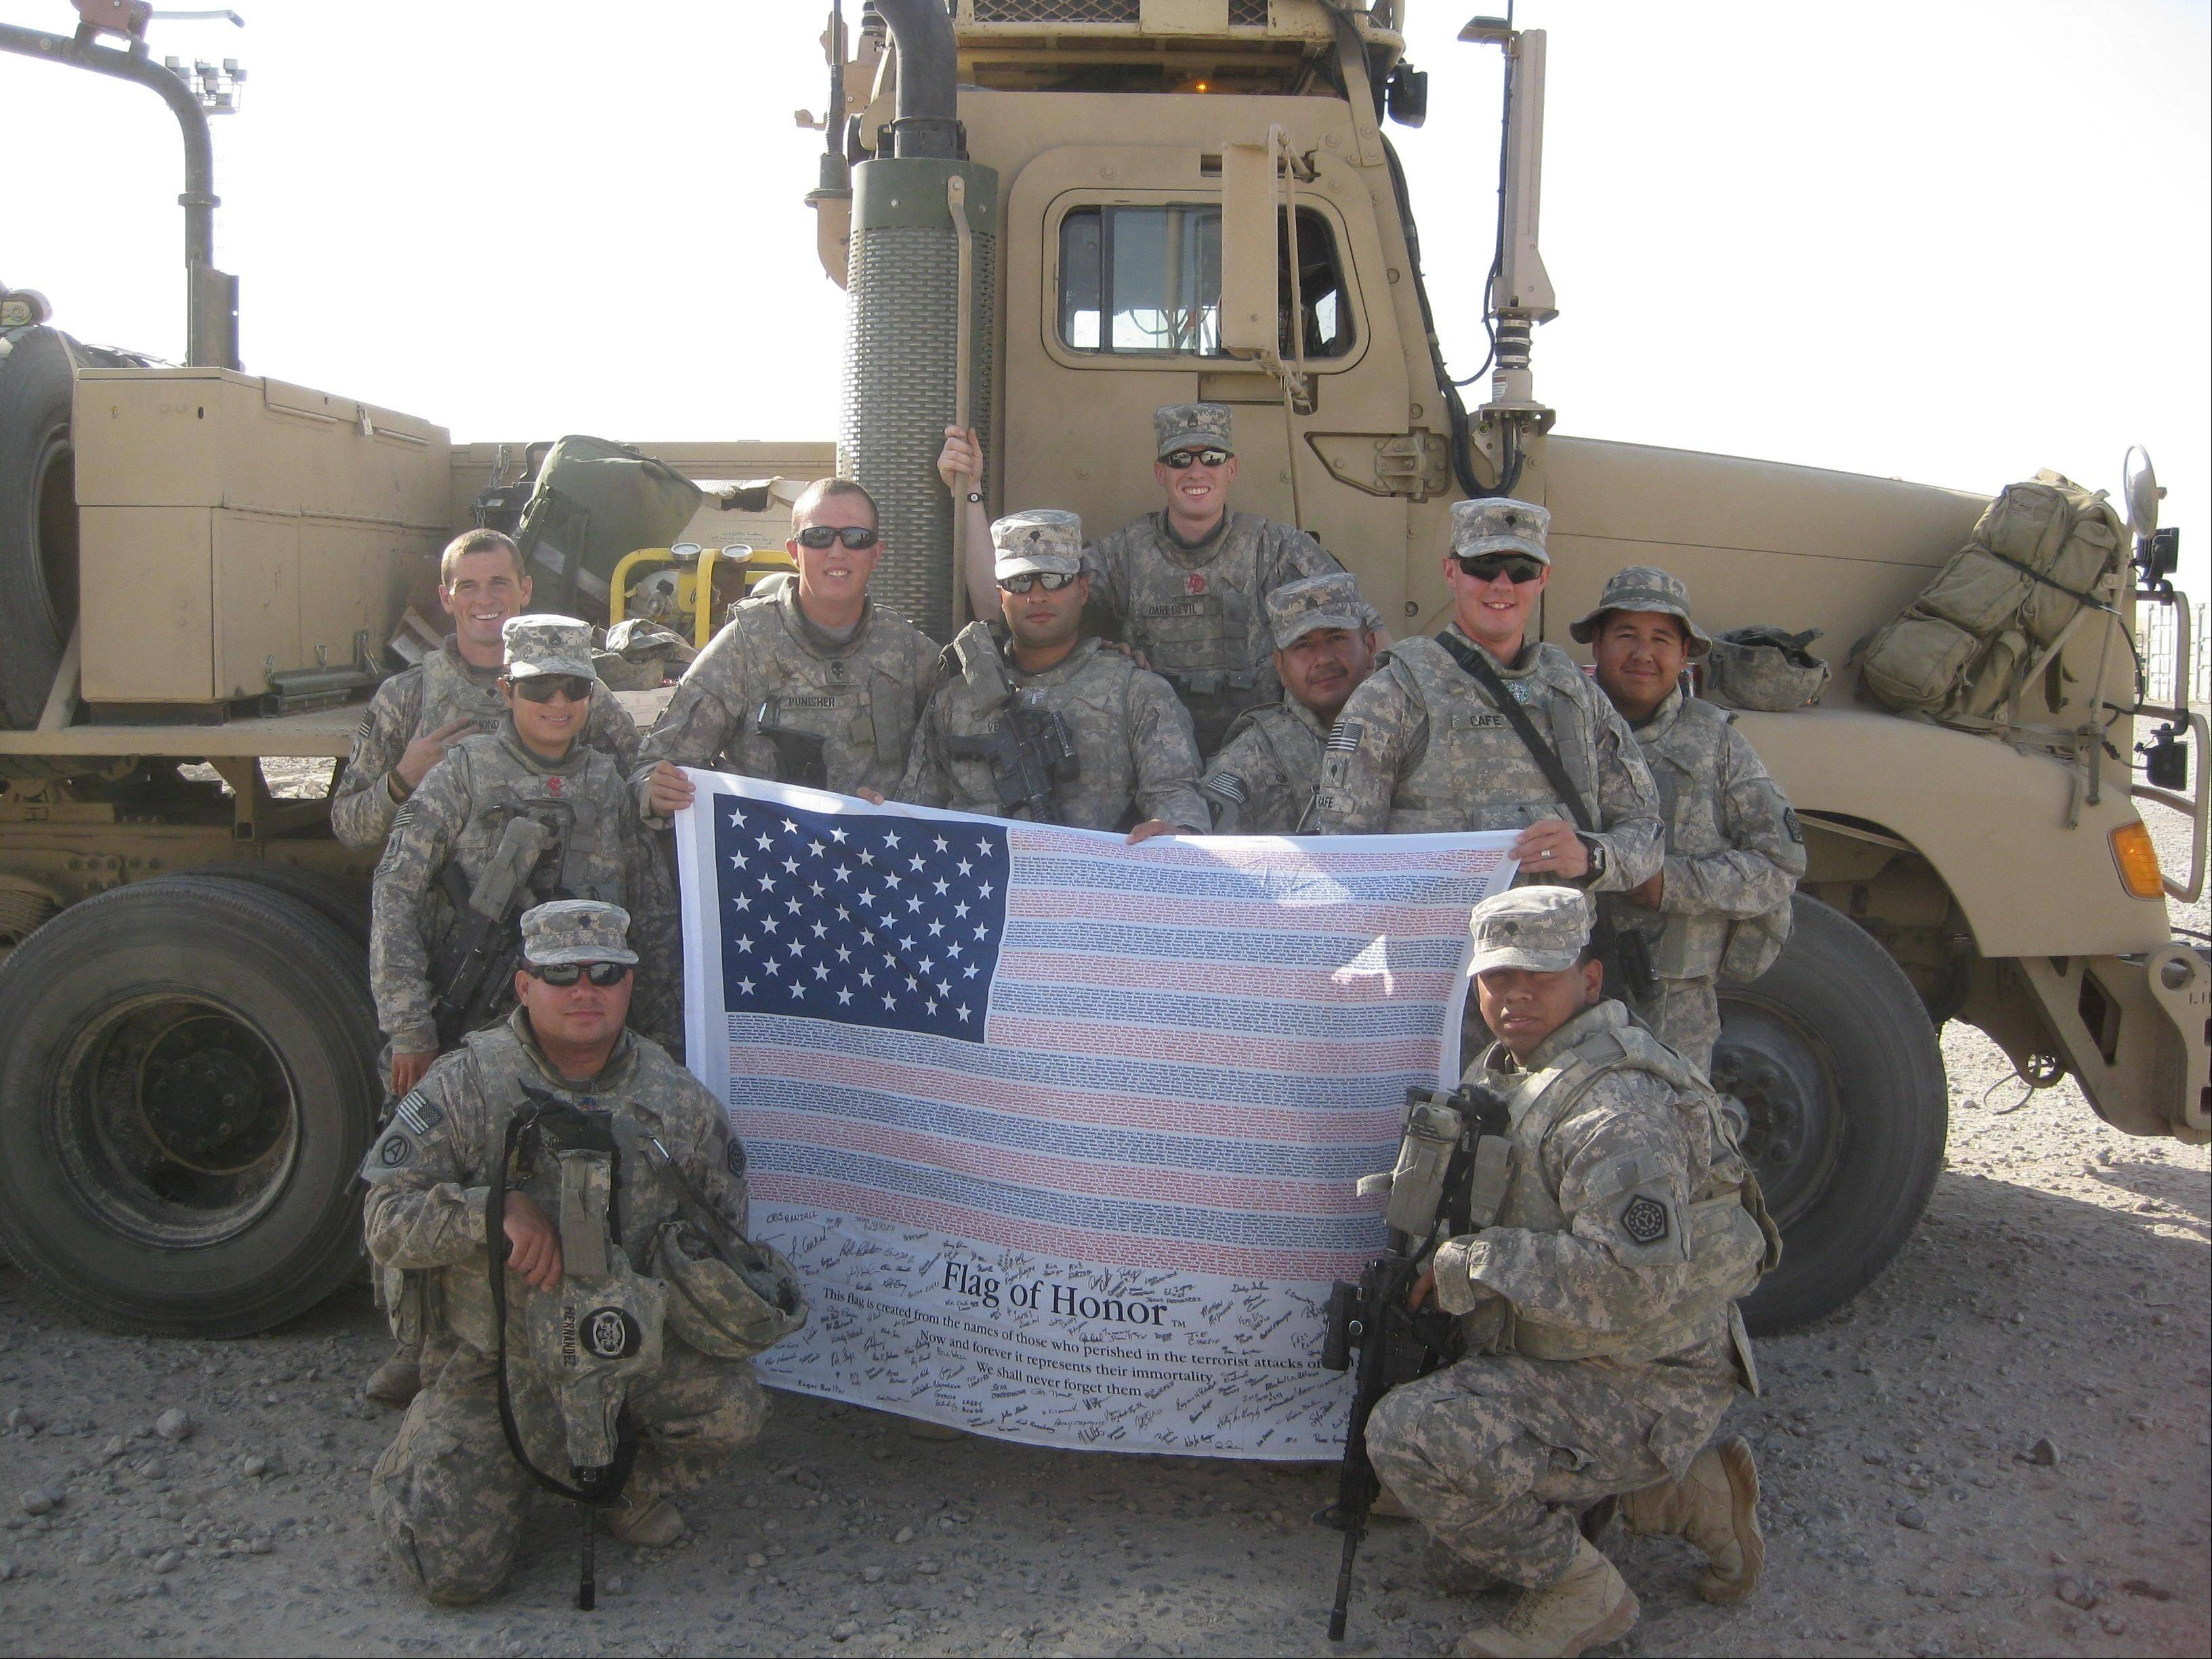 Members of the 1244th Transportation Company of the Illinois Army National Guard, including Hanover Park residents Adam Smith, fourth from left, wearing no hat, and Juan Millan, farthest right, standing, hold a flag signed by Hanover Park staff and officials while in Baghdad, Iraq. The photo will hang in the village hall lobby.